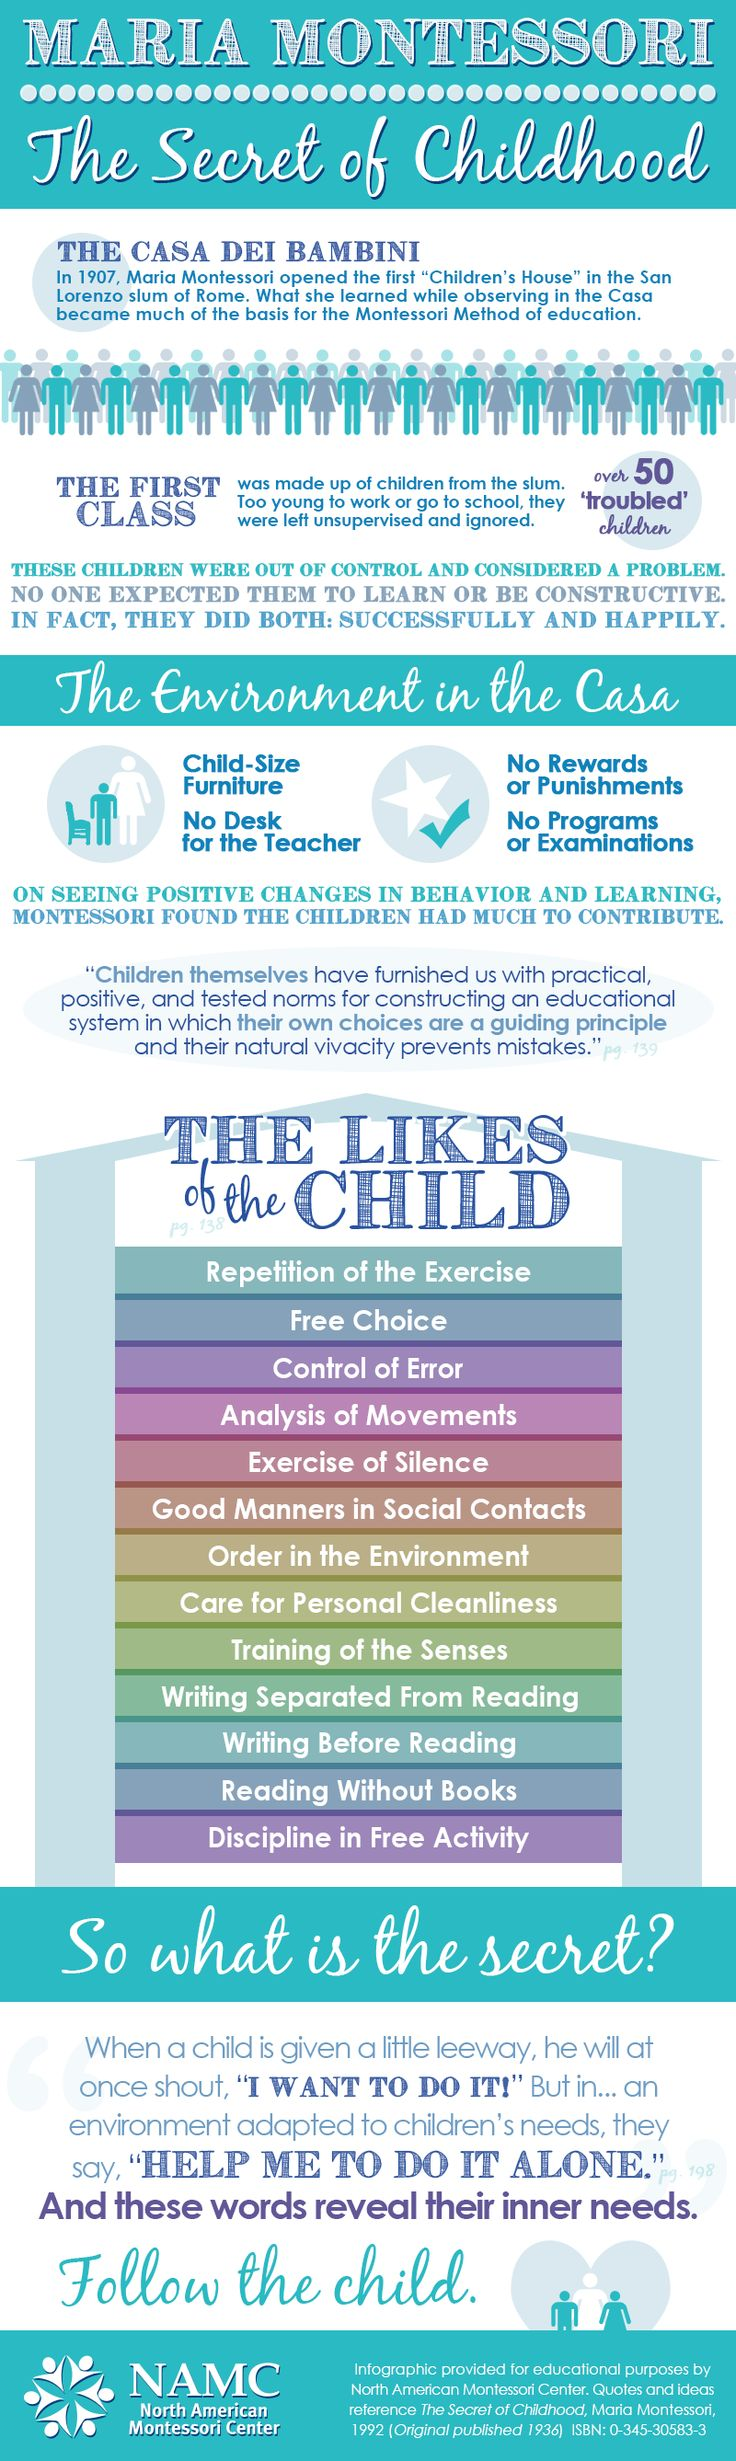 The Secret of Childhood: An #Infographic on Maria Montessori's Well Known Work